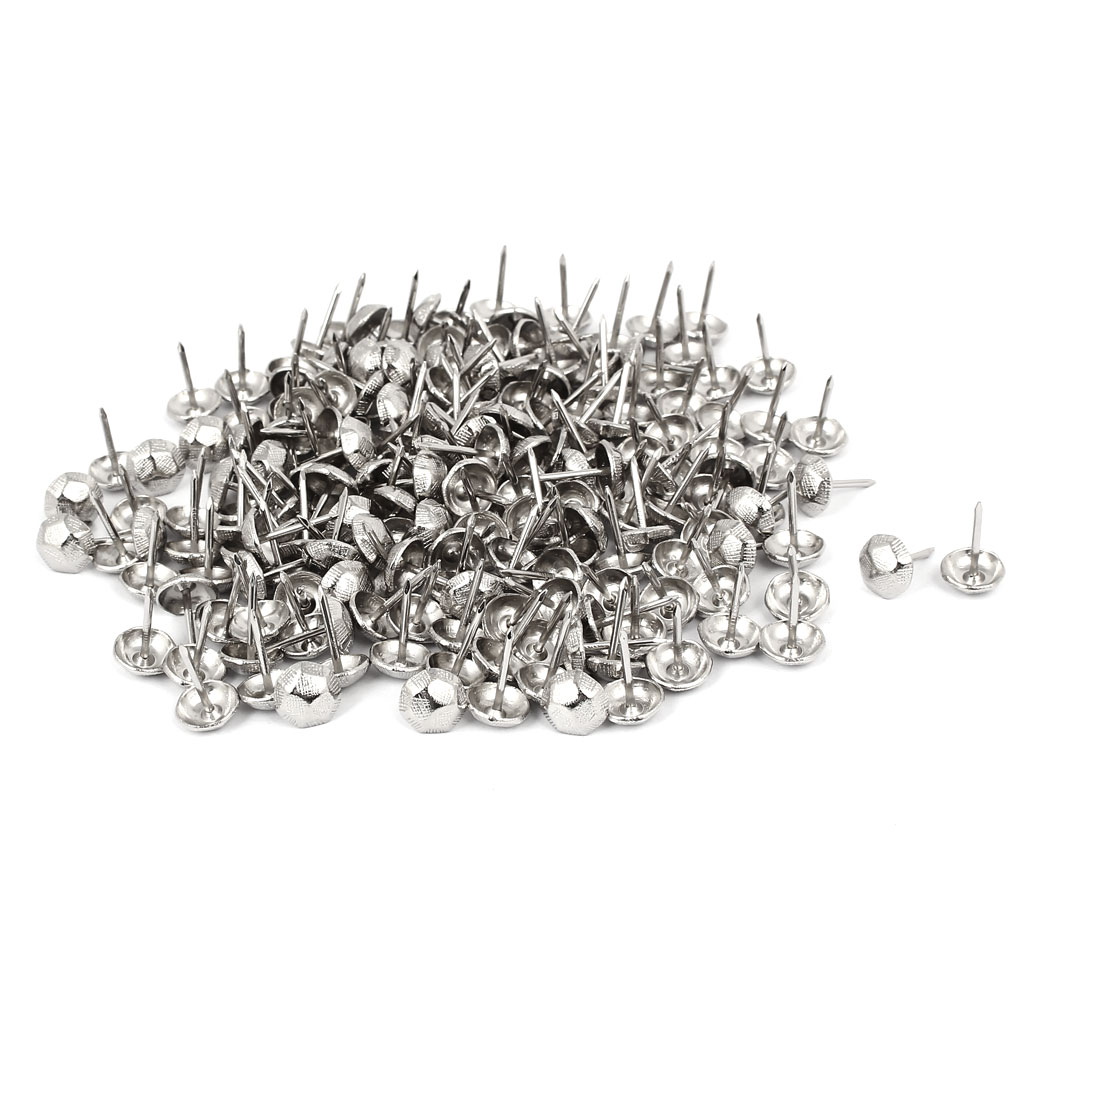 "7/16"" Dia Stainless Steel Thumbtack Upholstery Decorative Tack Nail 200PCS"